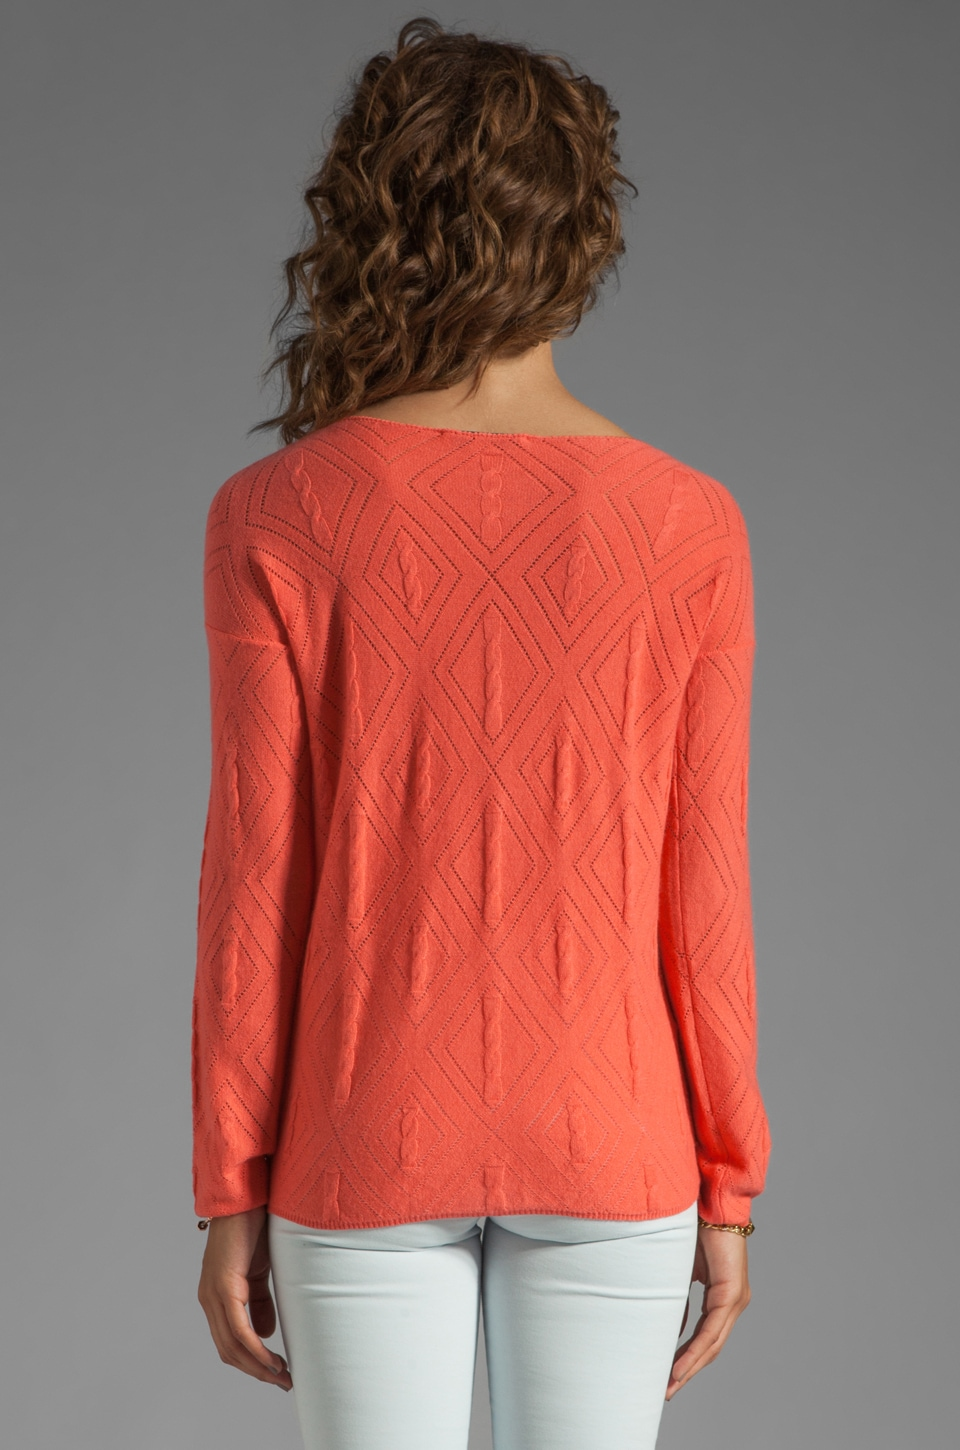 Autumn Cashmere Cable Diamond Pointelle Boatneck in Coral